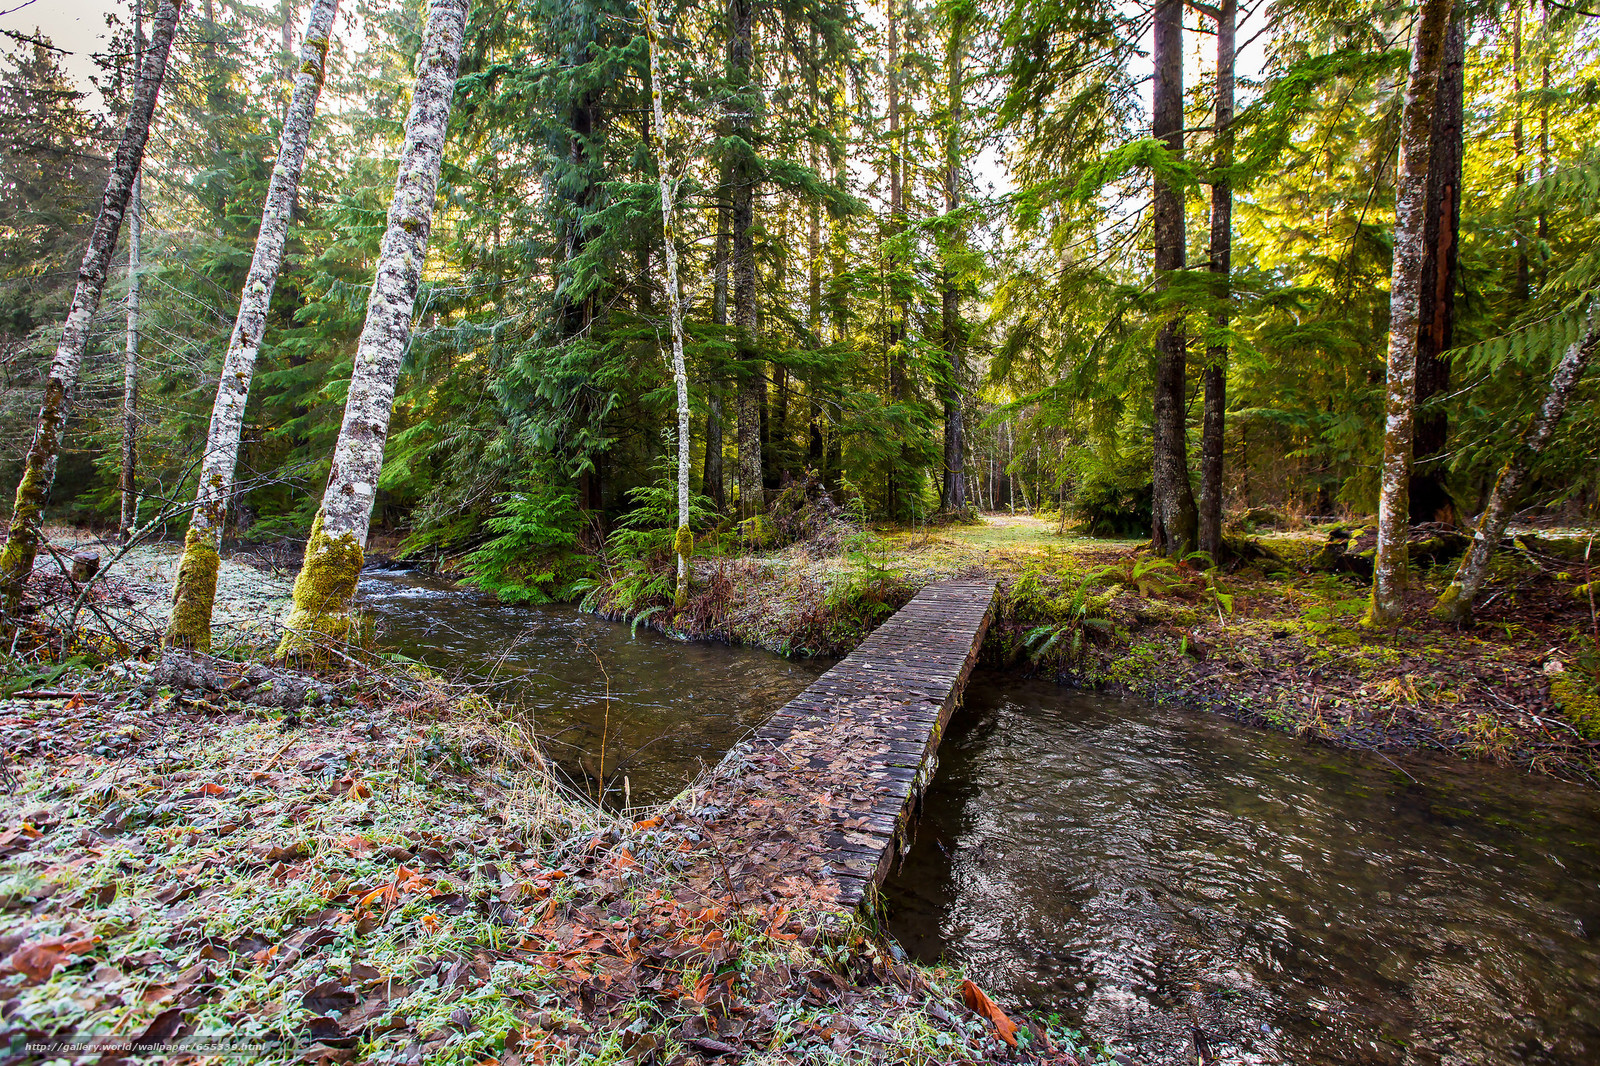 forest, small river, bridge, trees, nature